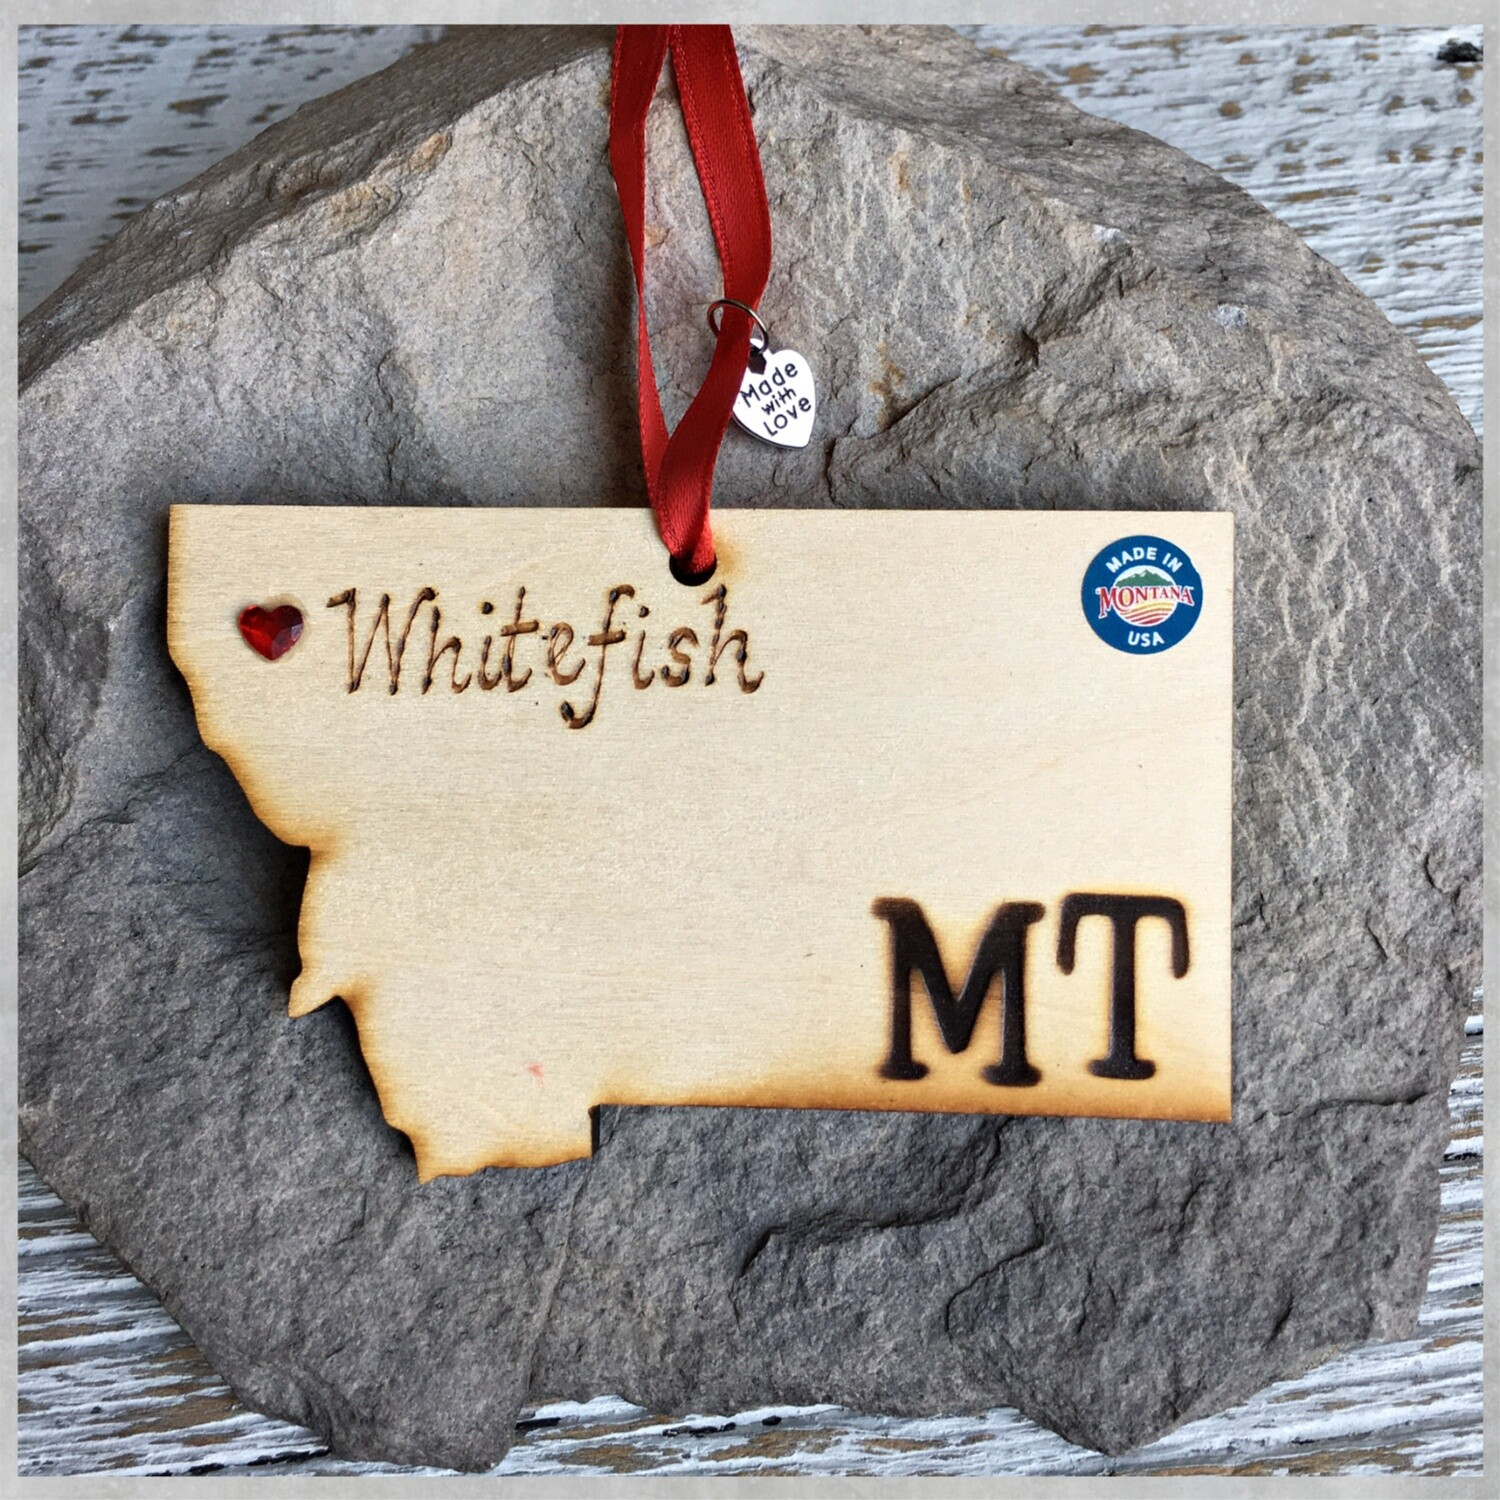 40-20 Whitefish MT Ornament